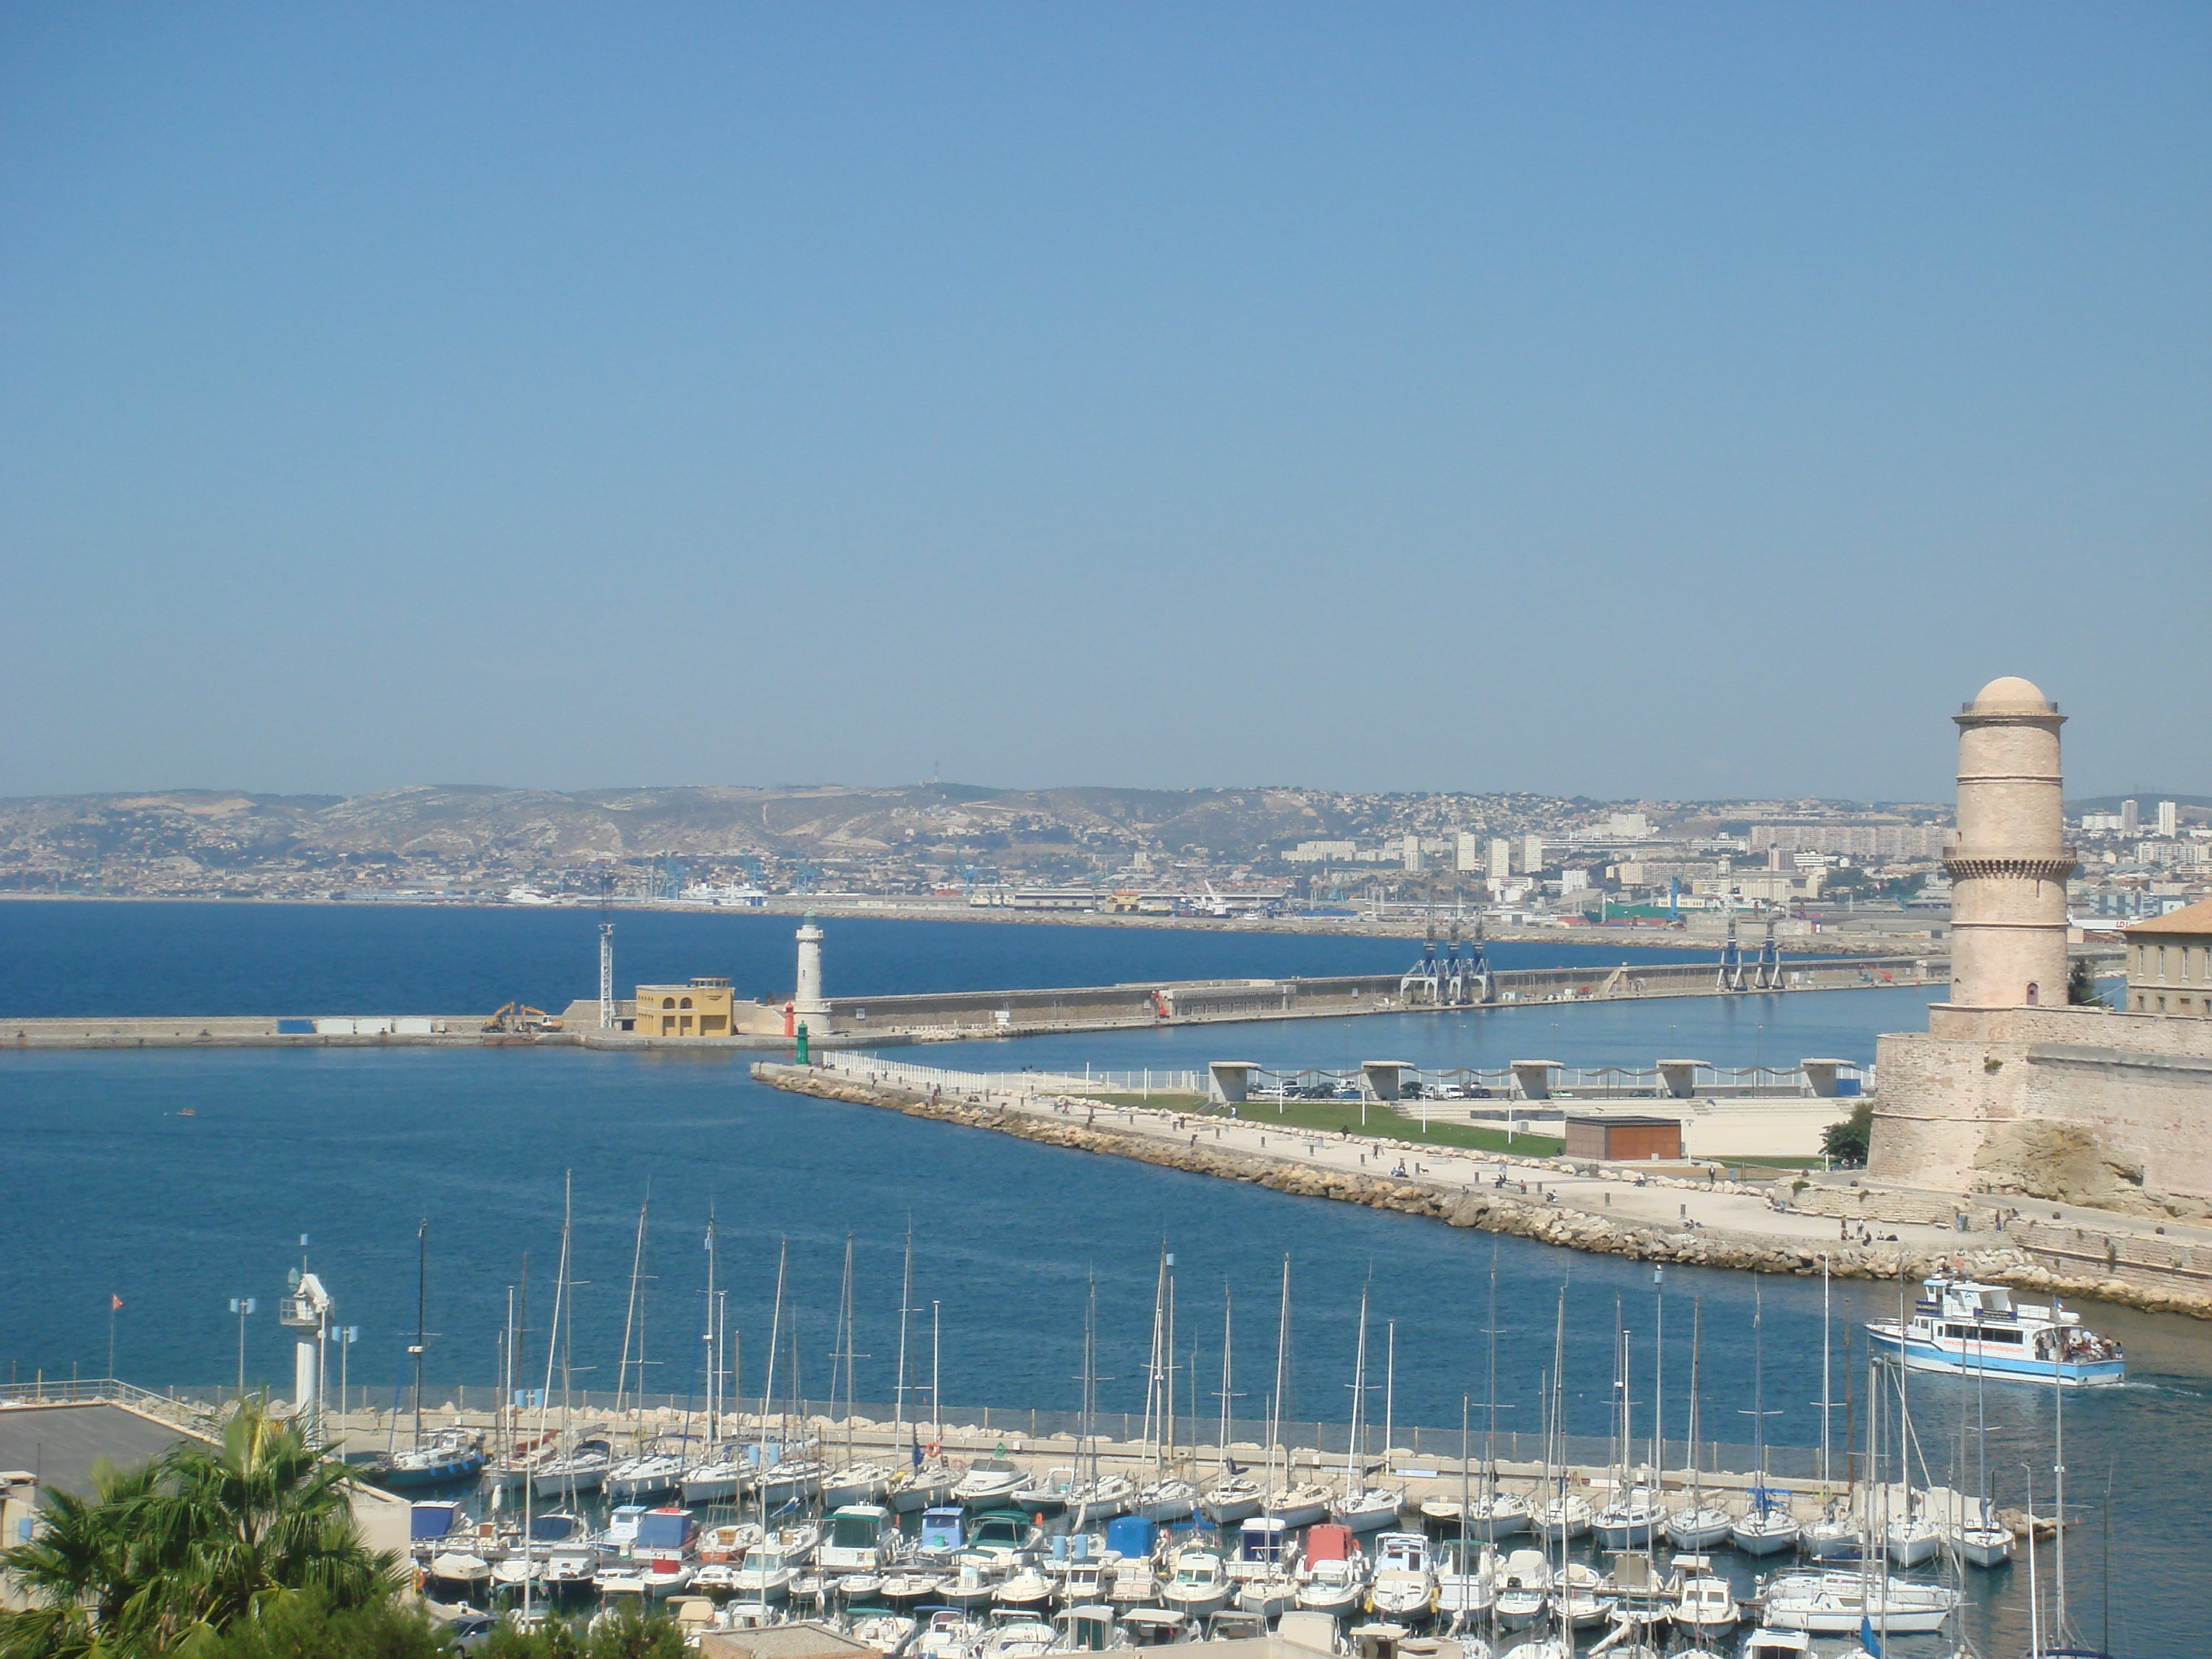 Body Of Water in Port of Marseille